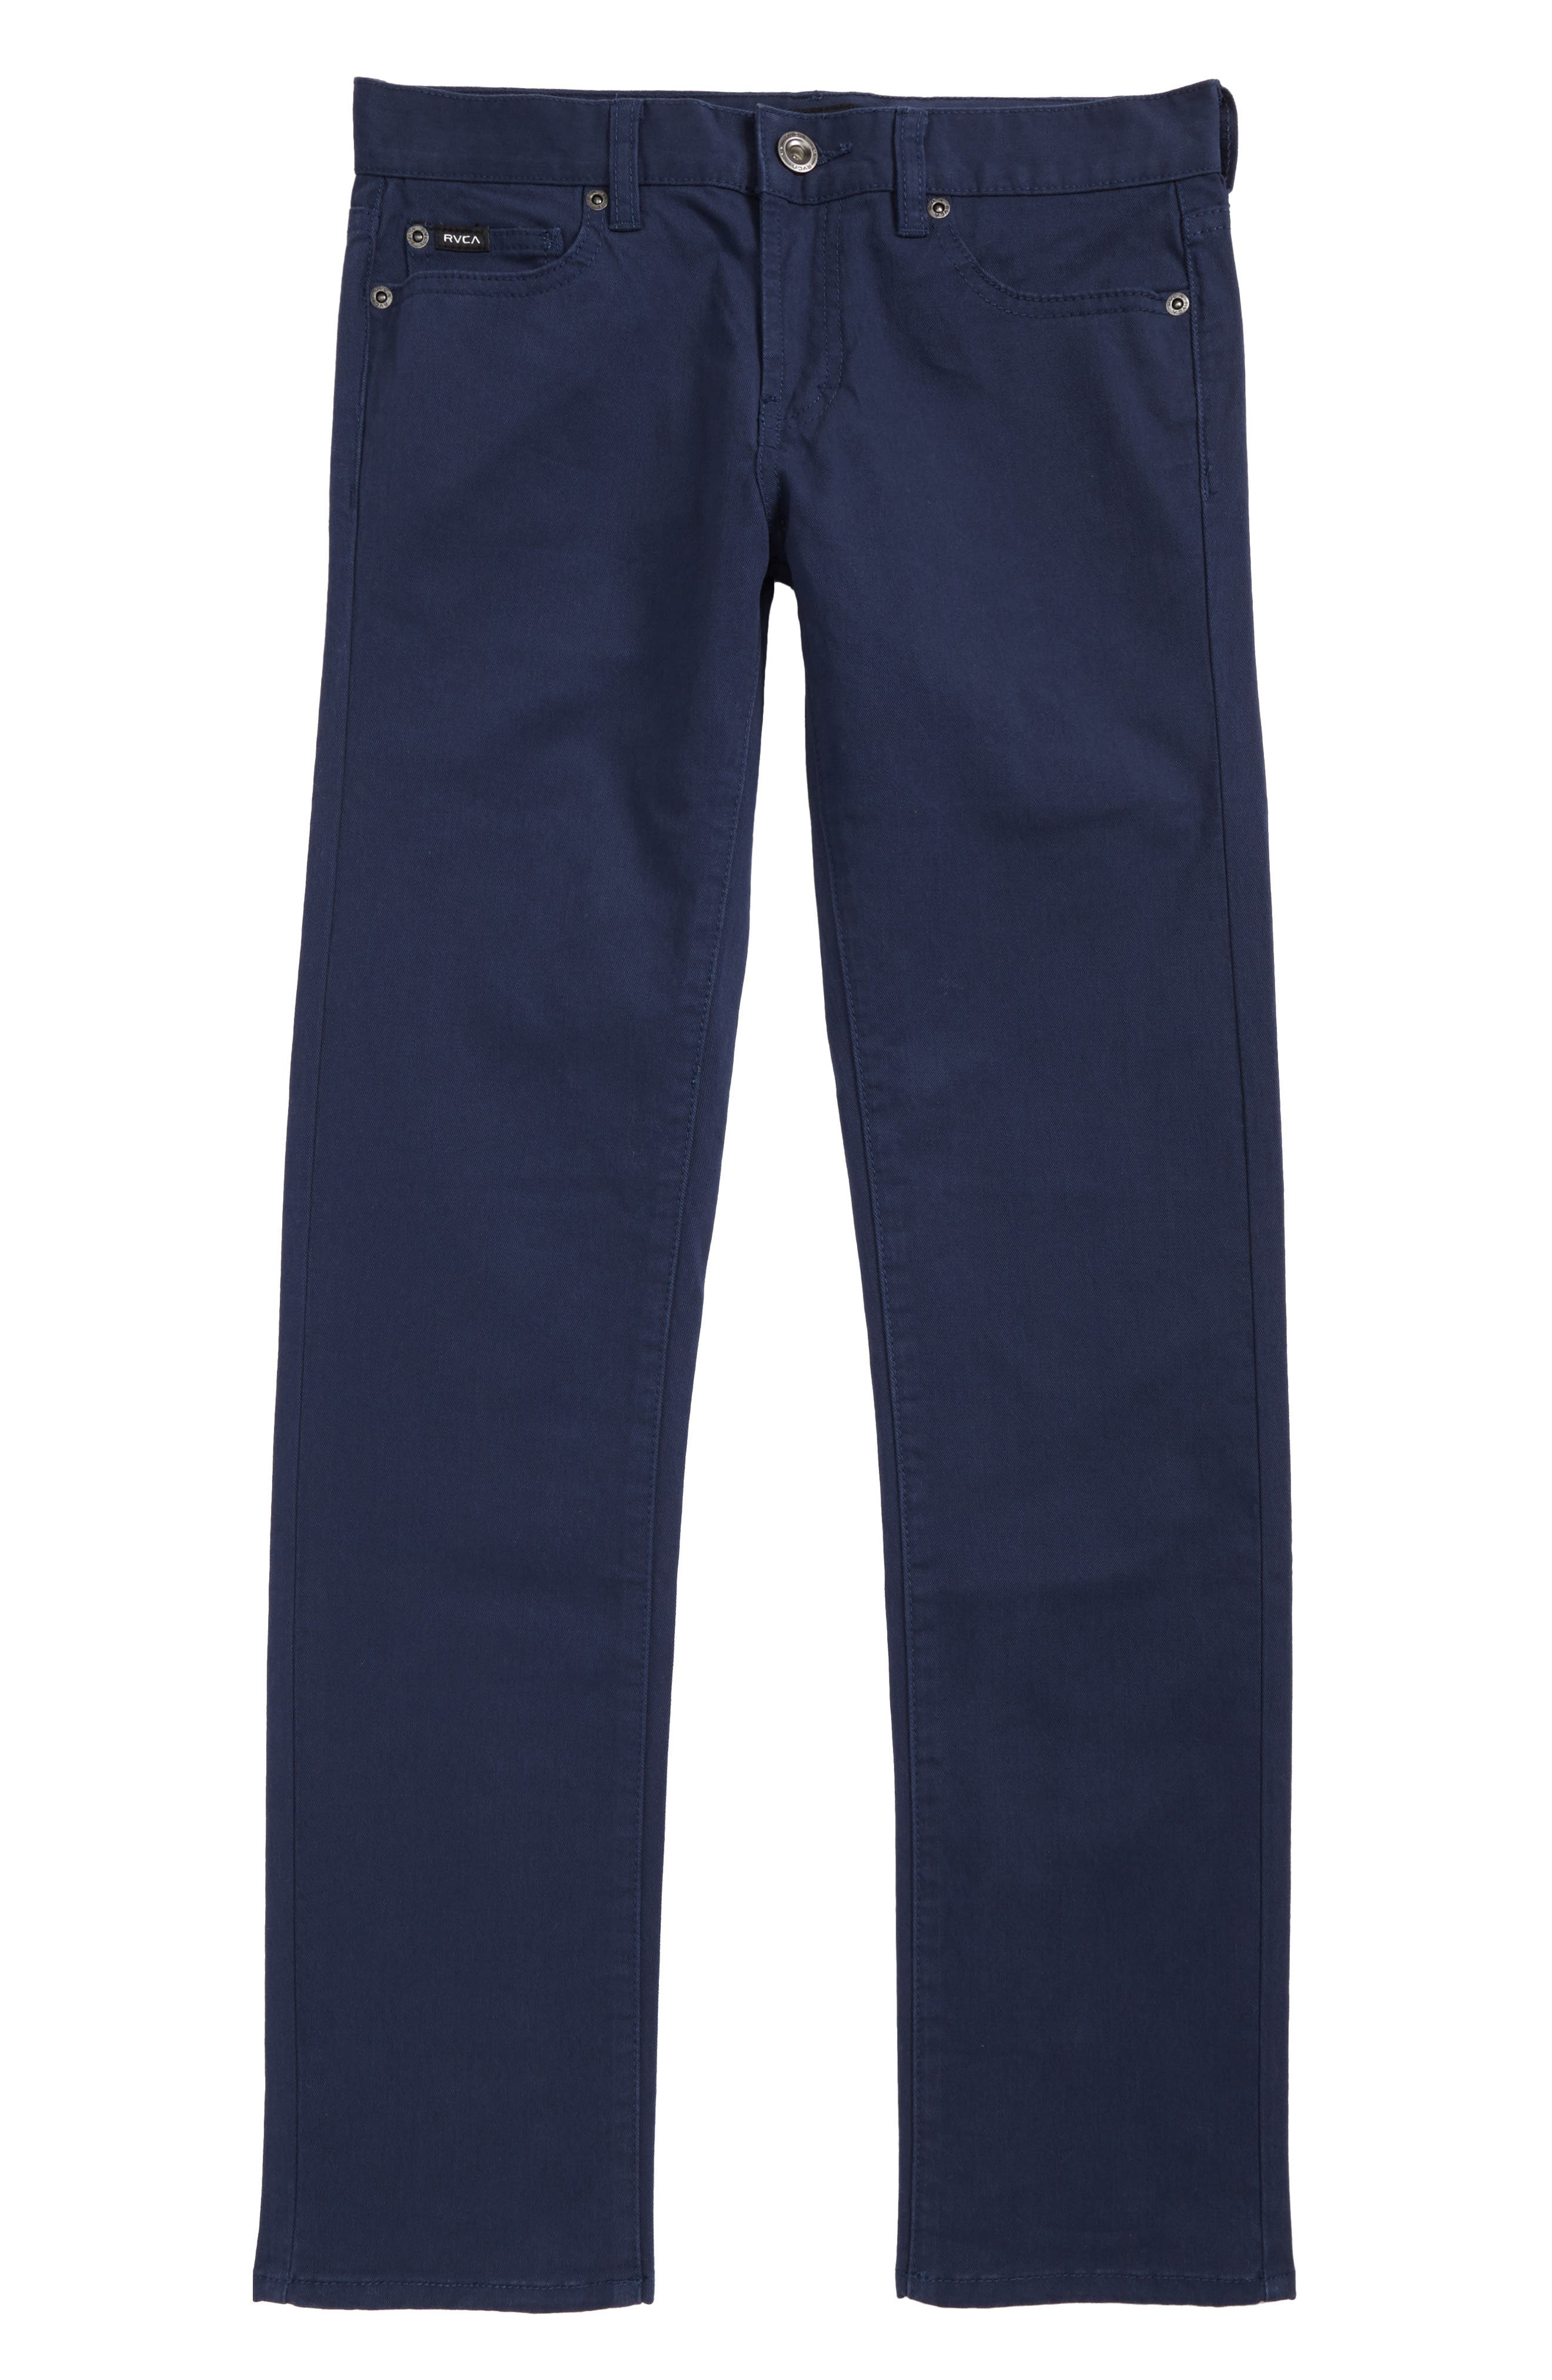 'Daggers' Slim Fit Twill Pants,                         Main,                         color, Federal Blue